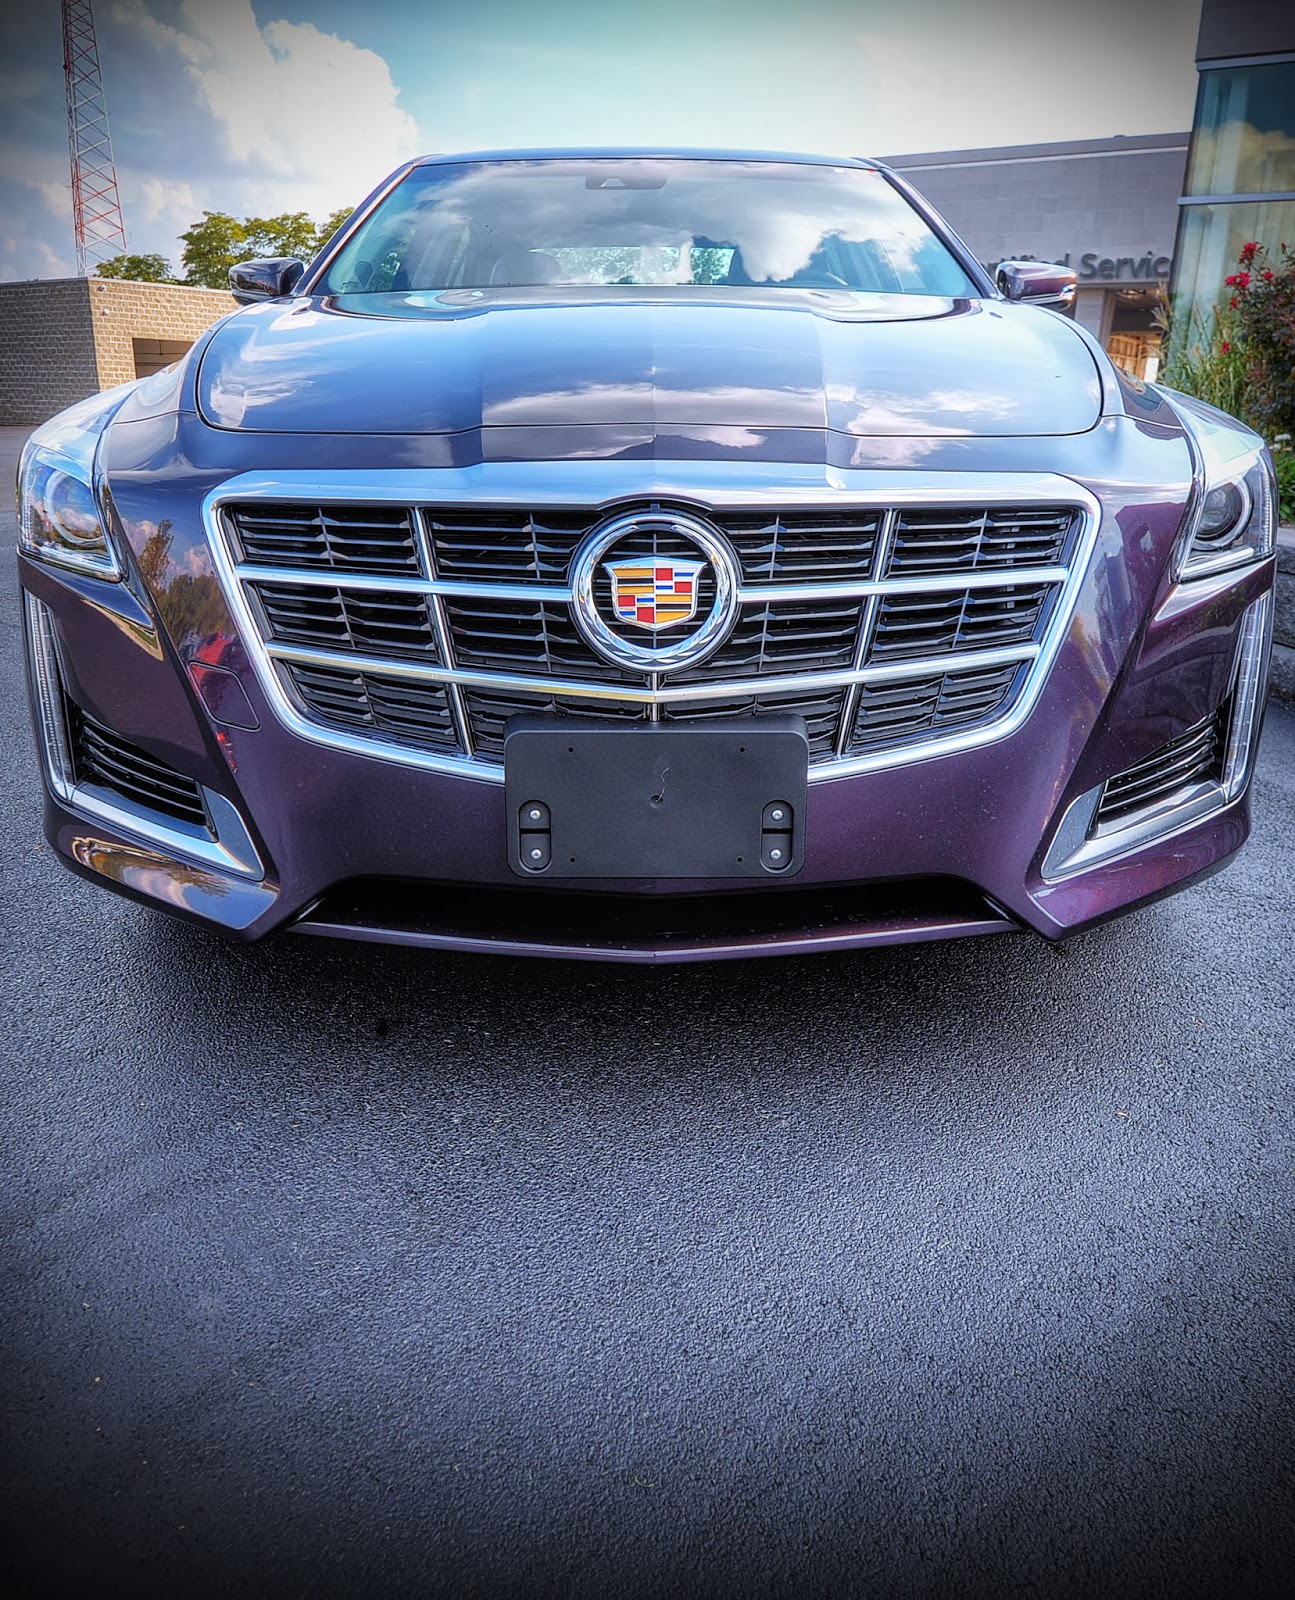 2014 Cars Cadillac Cts Use: Uftring Auto Blog: Motor Trend's 2014 Car Of The Year